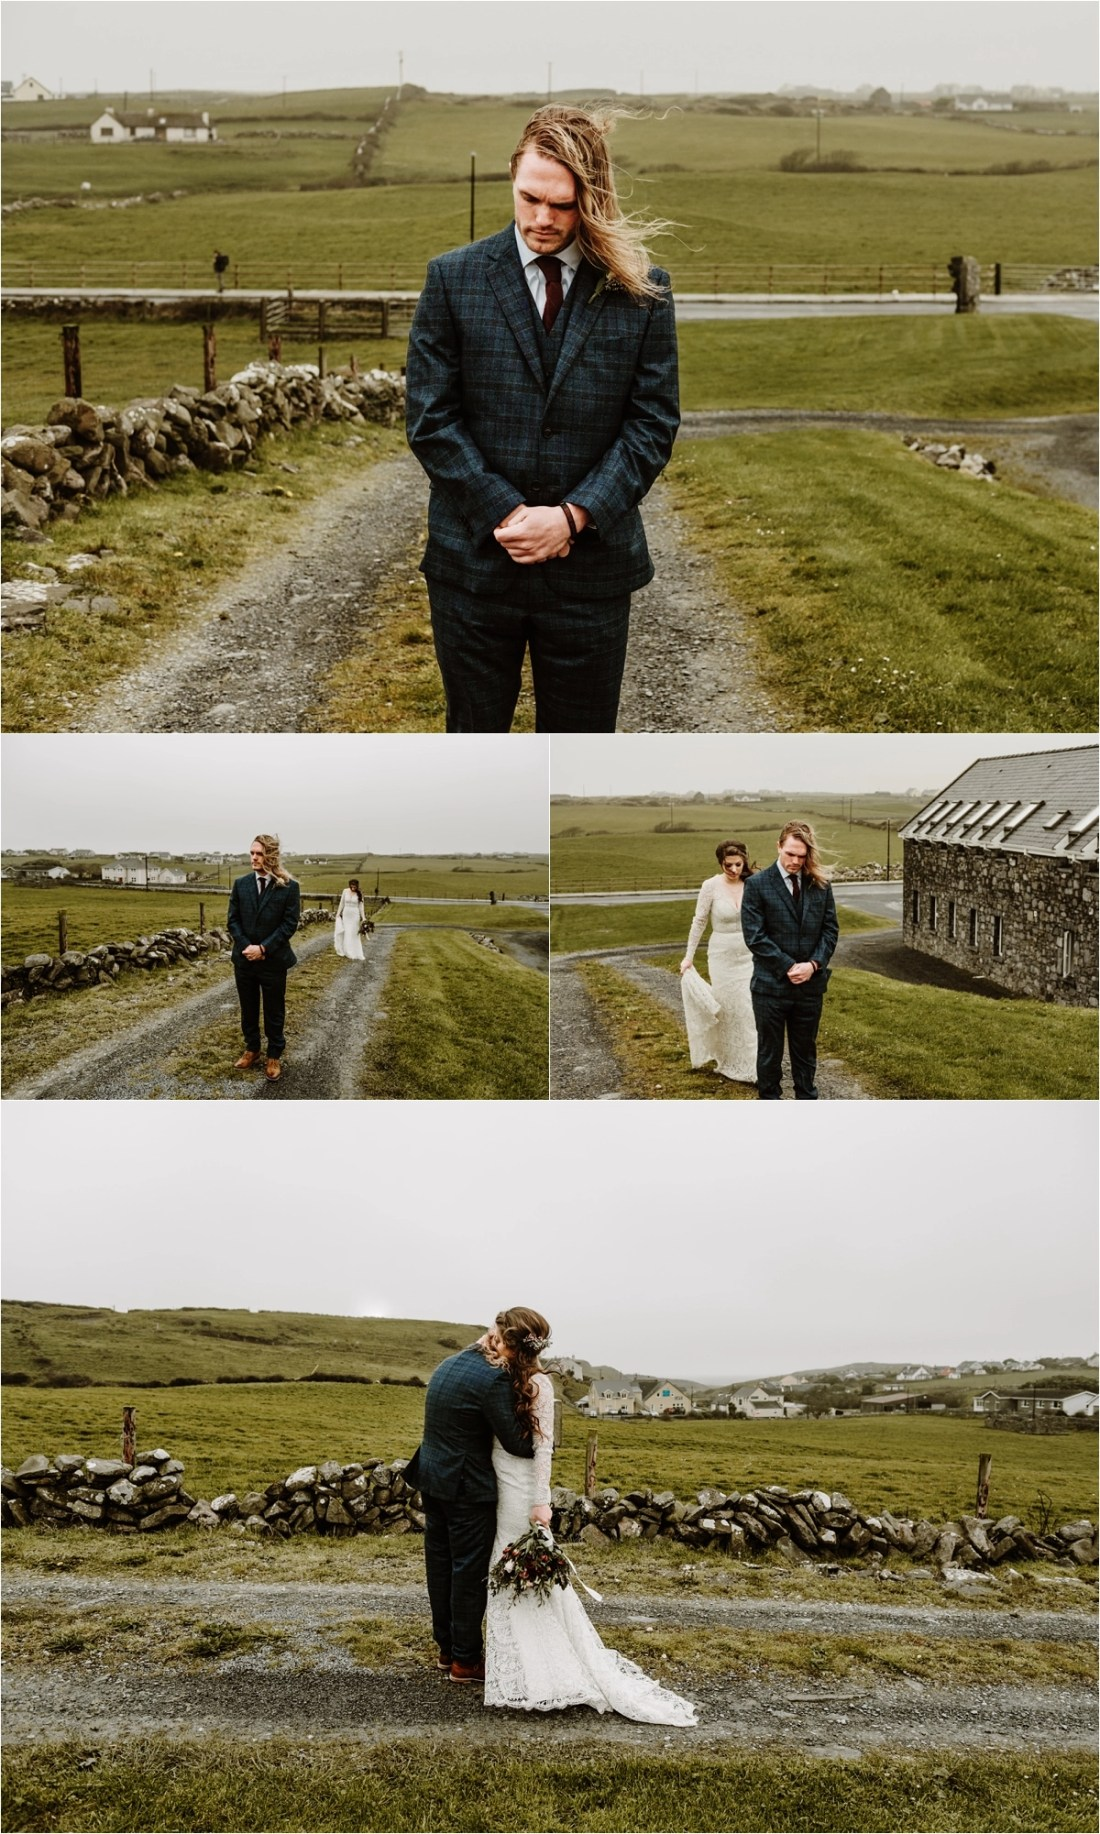 The groom Matt waits anxiously for bride Elizabeth outside Doolin Lodge in Ireland. Photos by Europe Elopement Photographer Wild Connections Photography